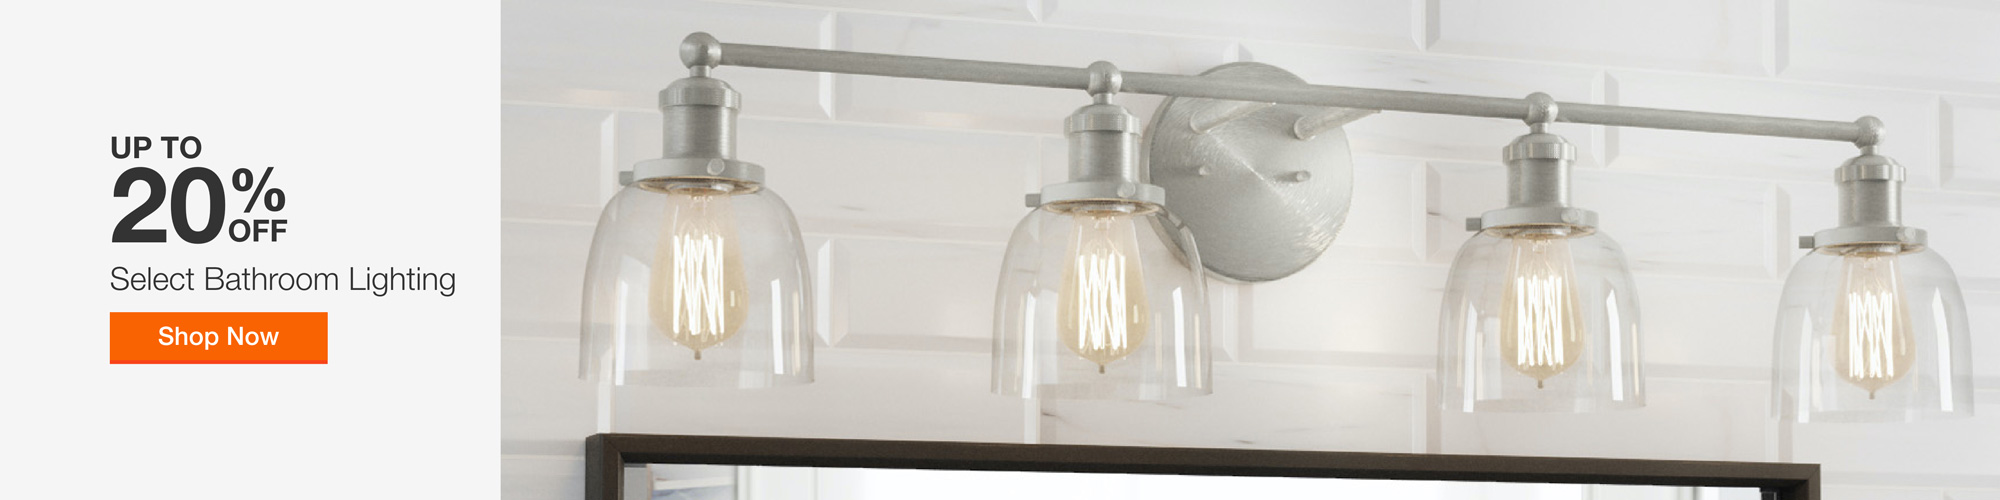 Up to 20% Off Bathroom Lighting